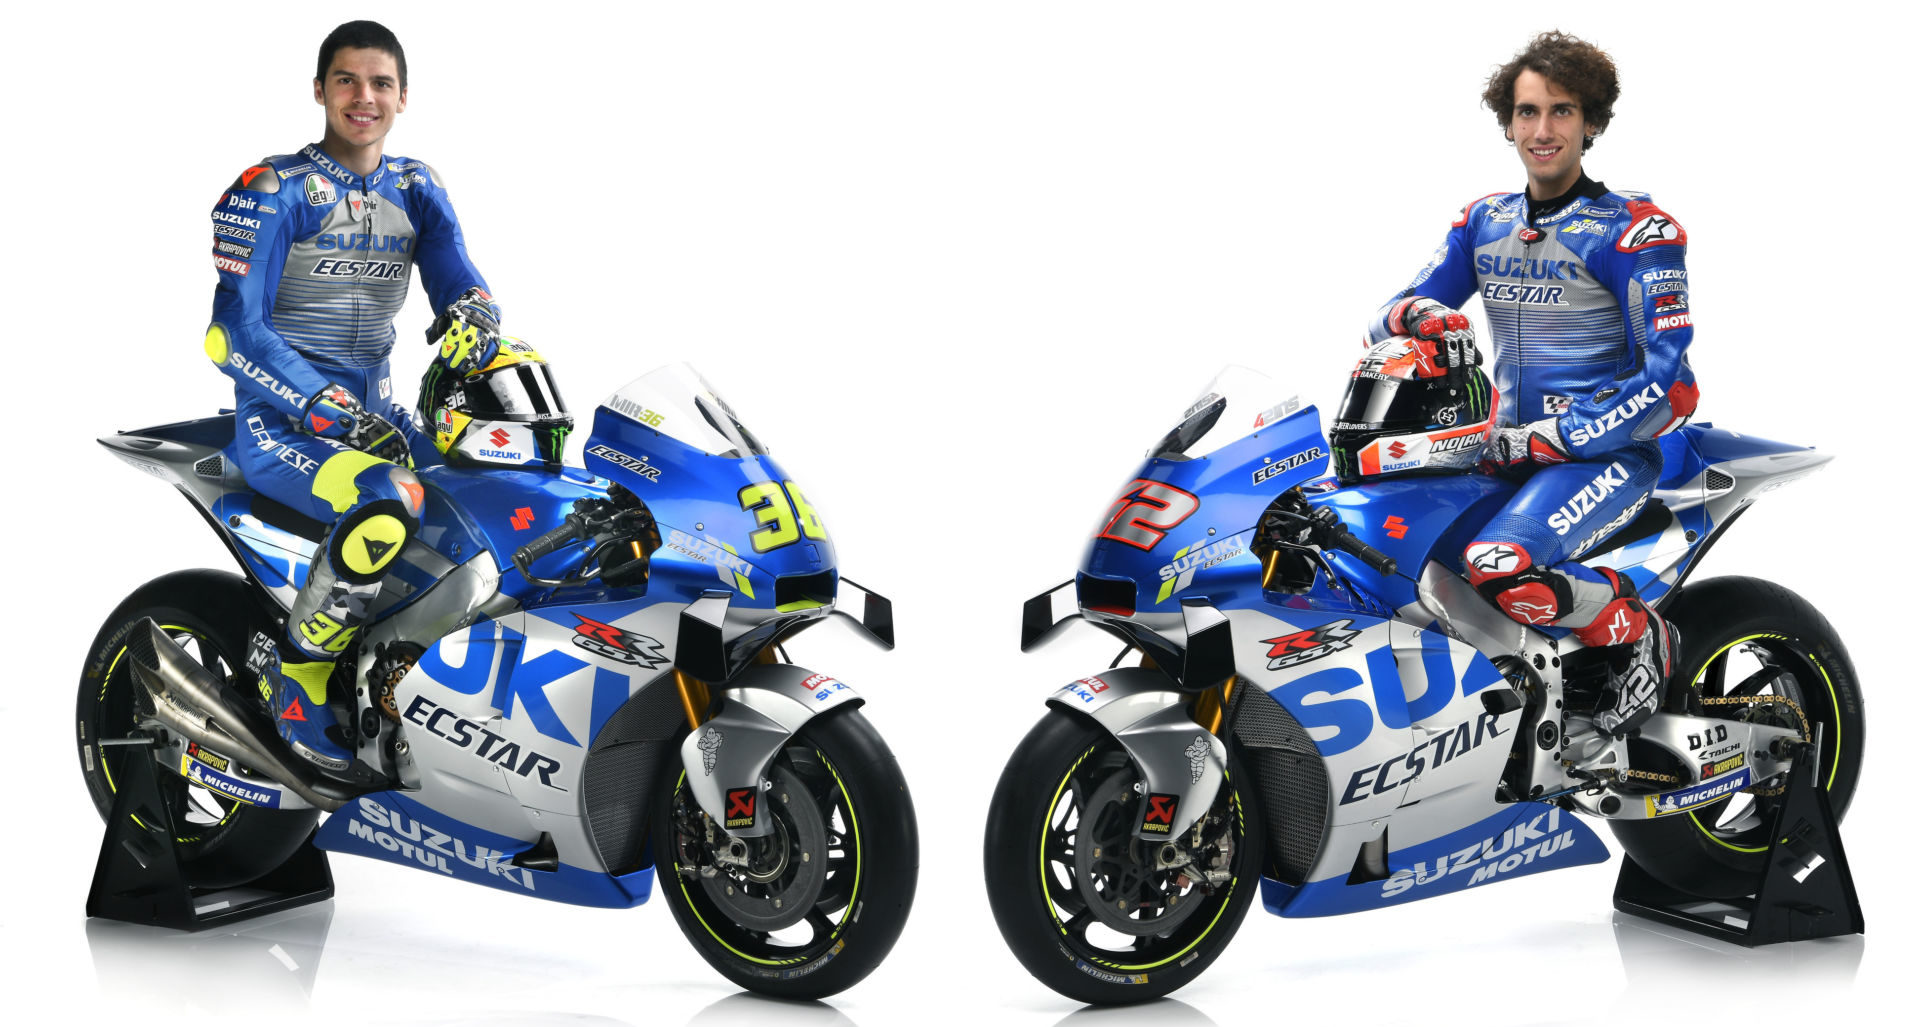 Motogp Team Suzuki Ecstar Officially Introduced Roadracing World Magazine Motorcycle Riding Racing Tech News